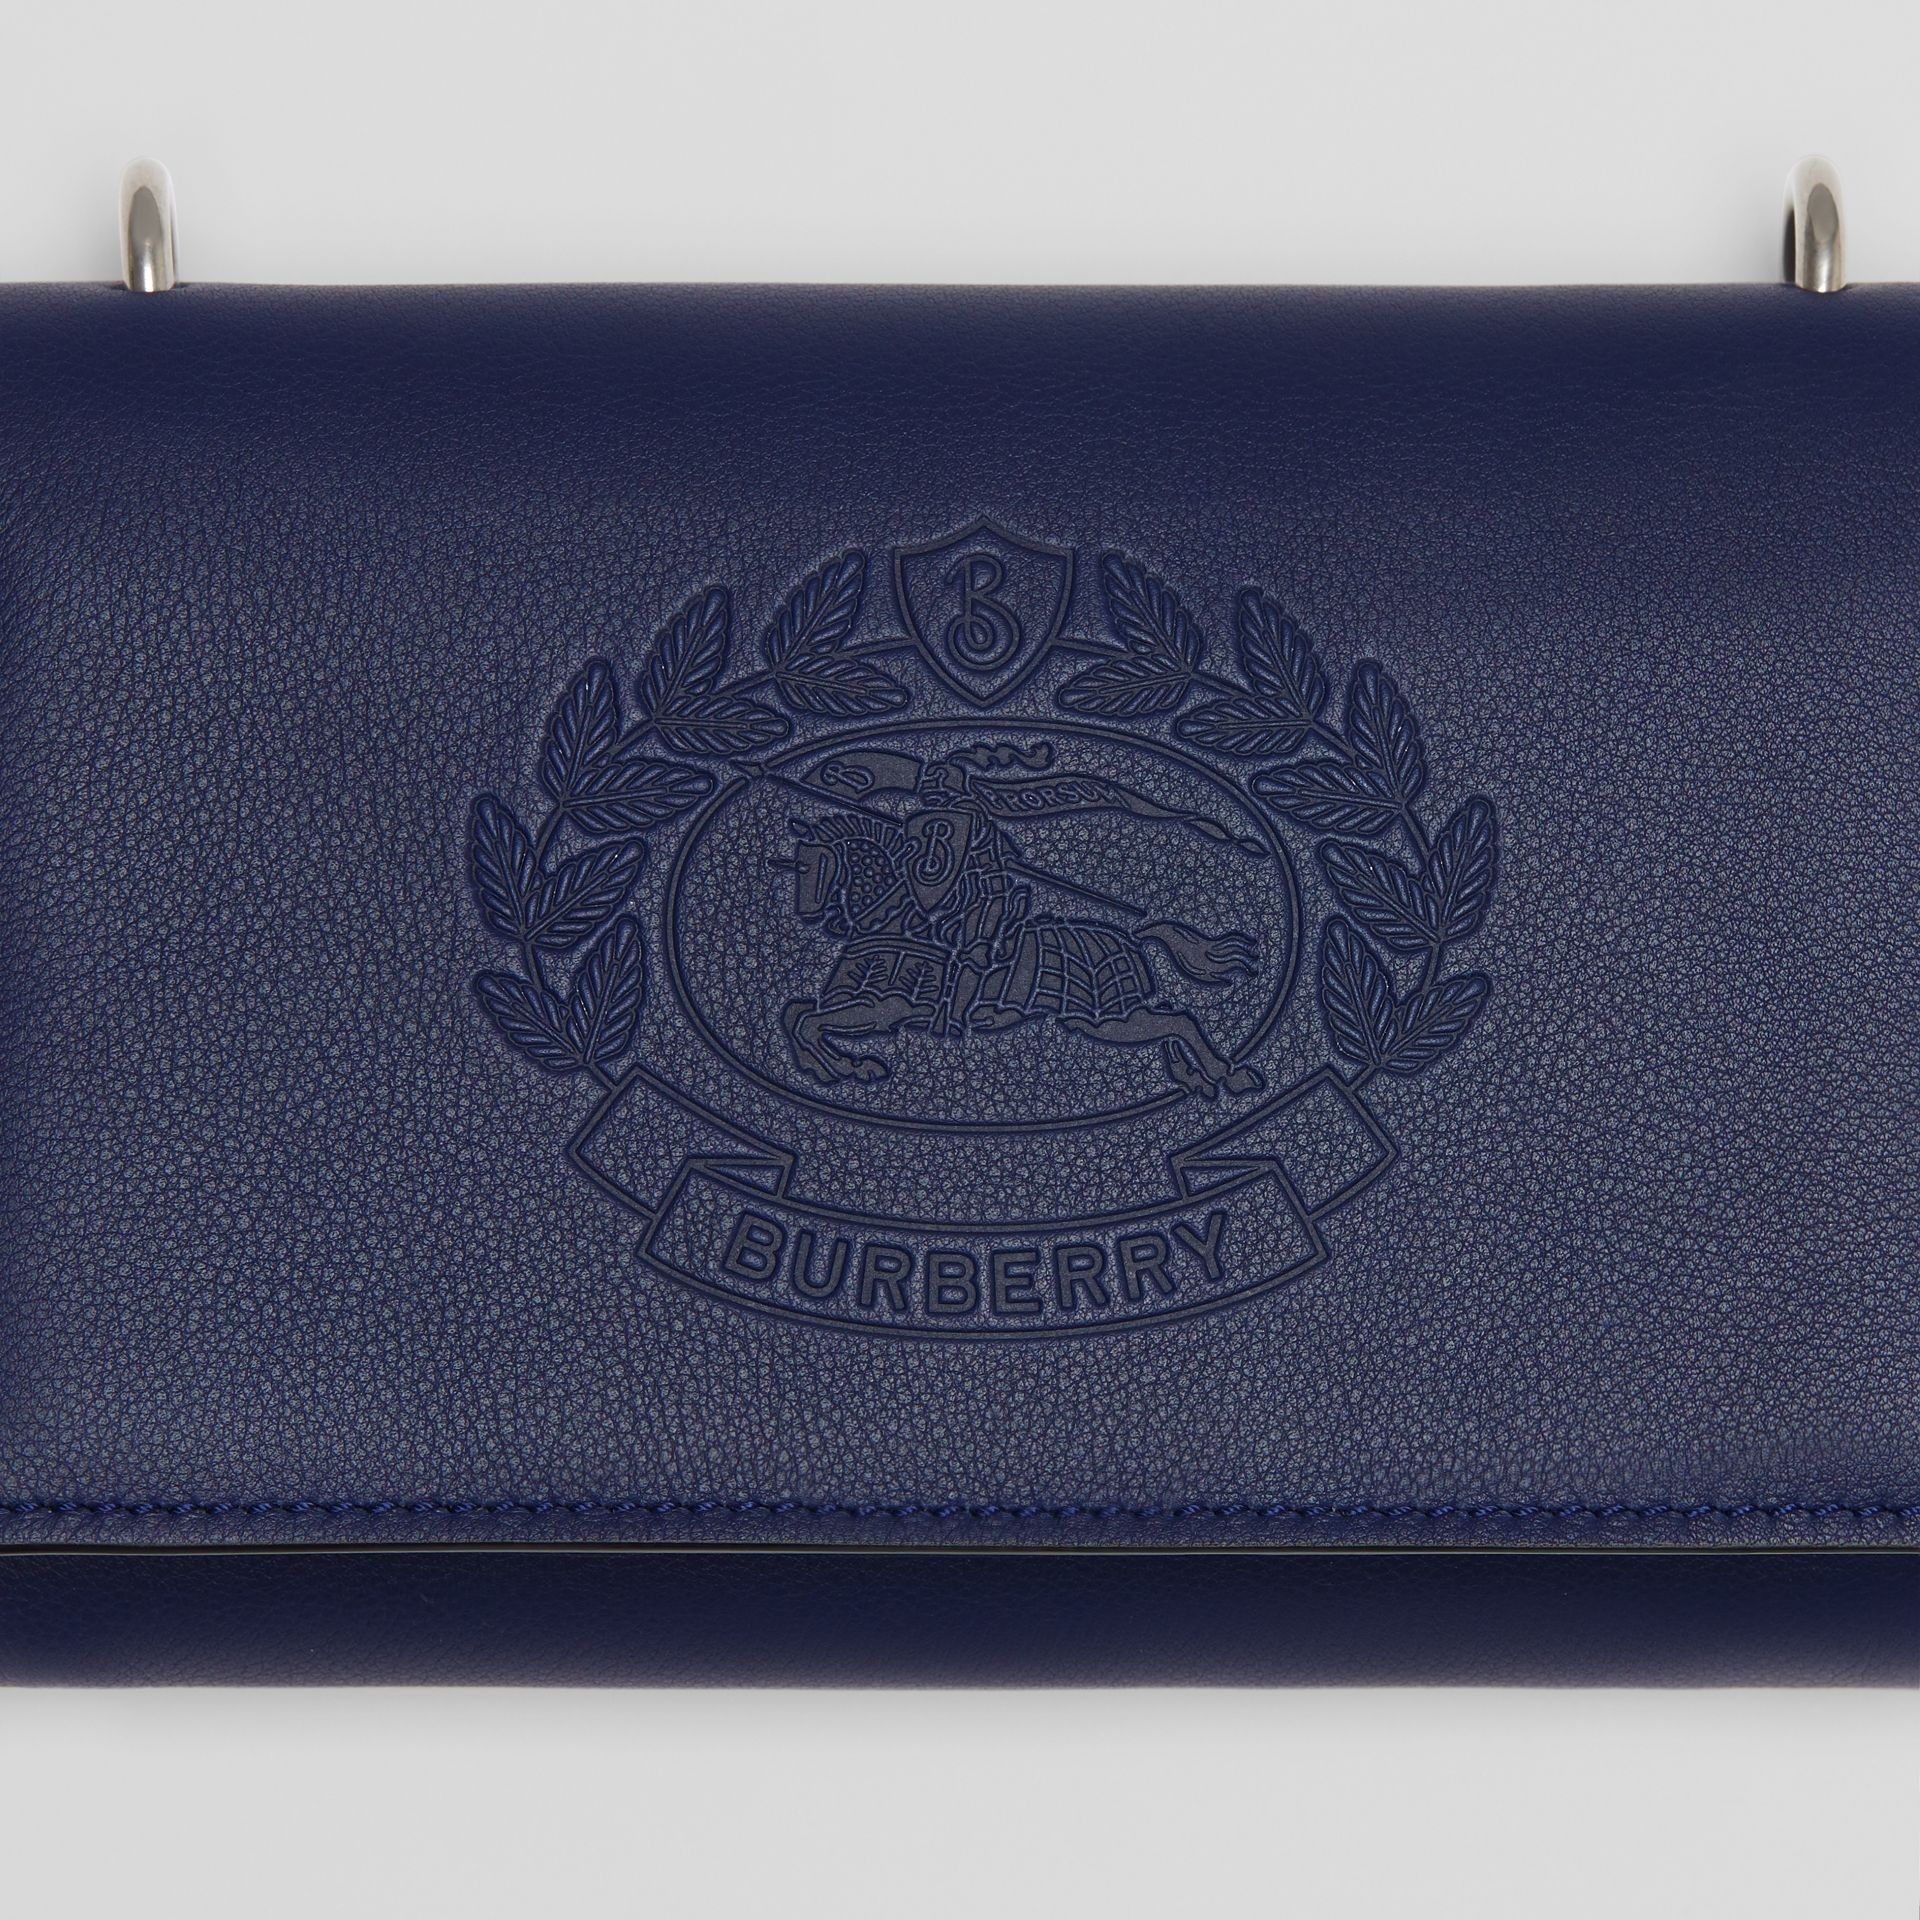 Embossed Crest Leather Wallet with Detachable Strap in Regency Blue - Women | Burberry - gallery image 1